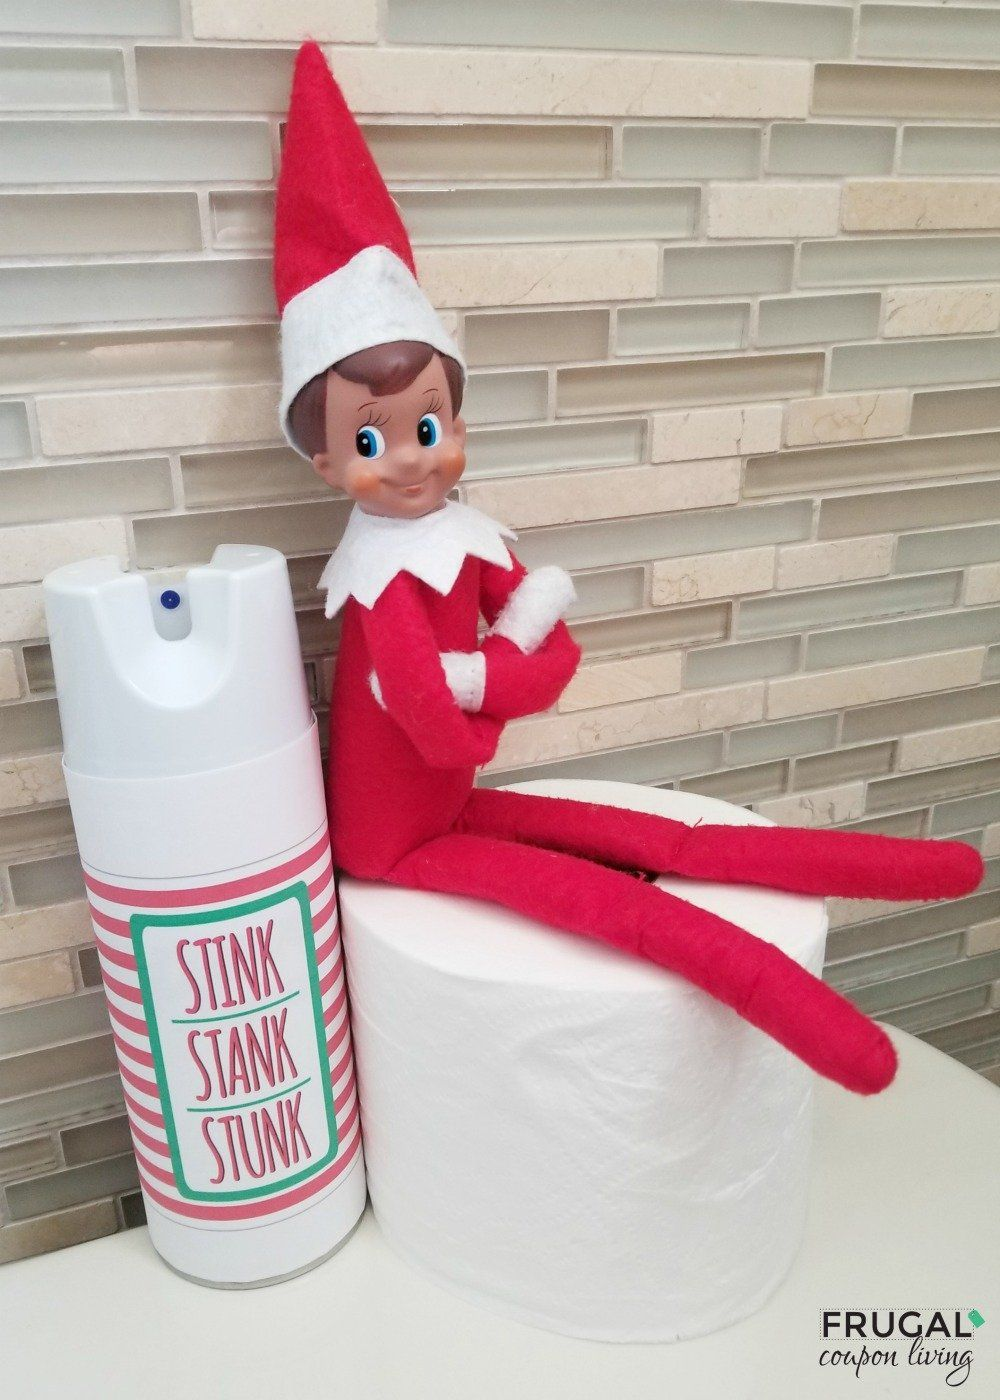 Stink Stank Stunk Spray in 2020 Elf, Elf on the shelf